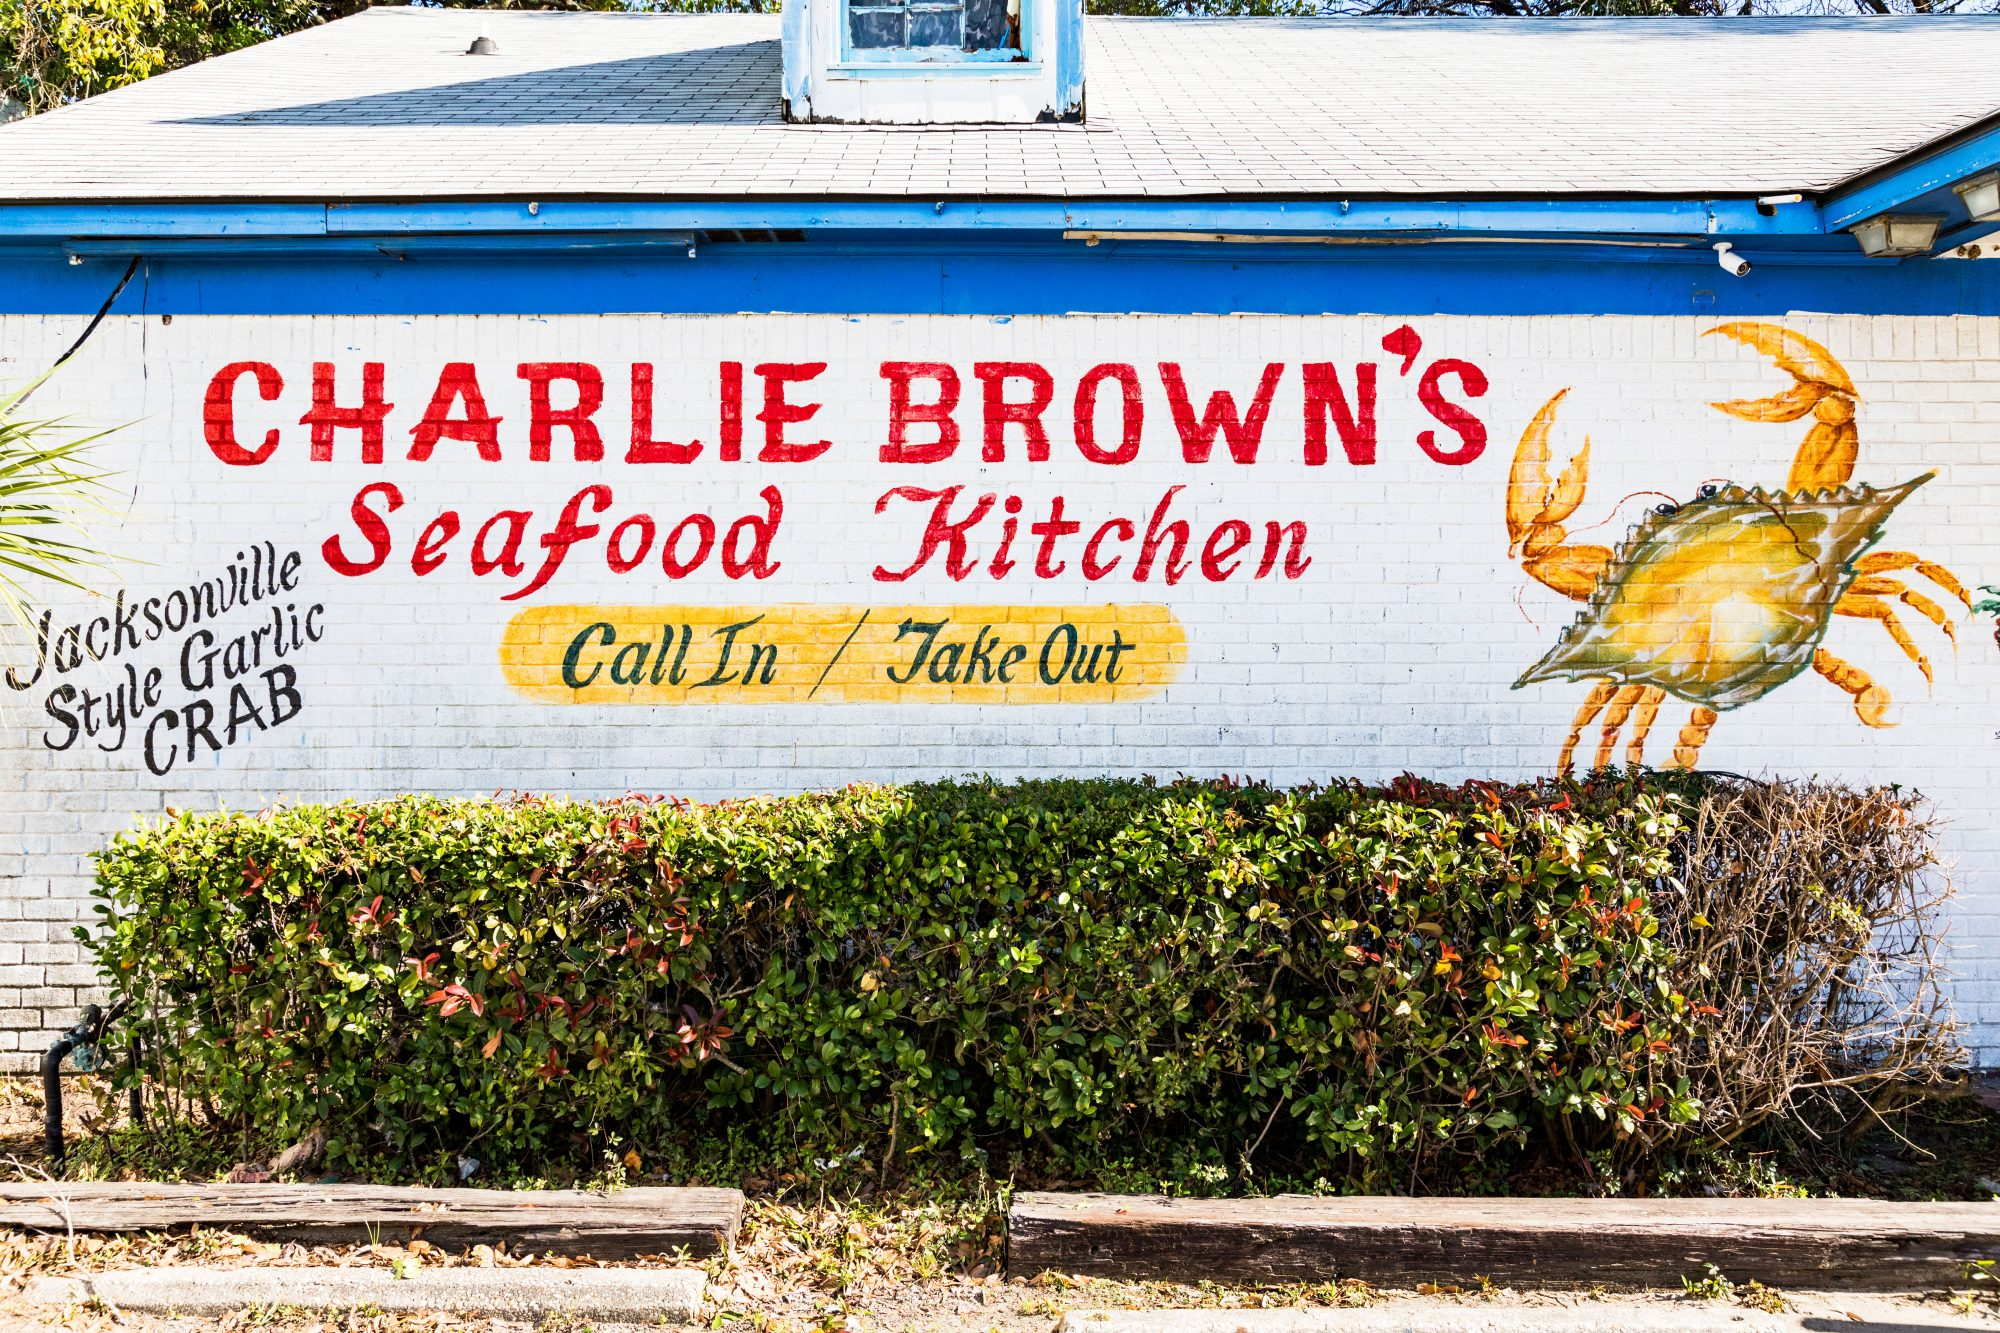 Charlie Brown Seafood in Charleston